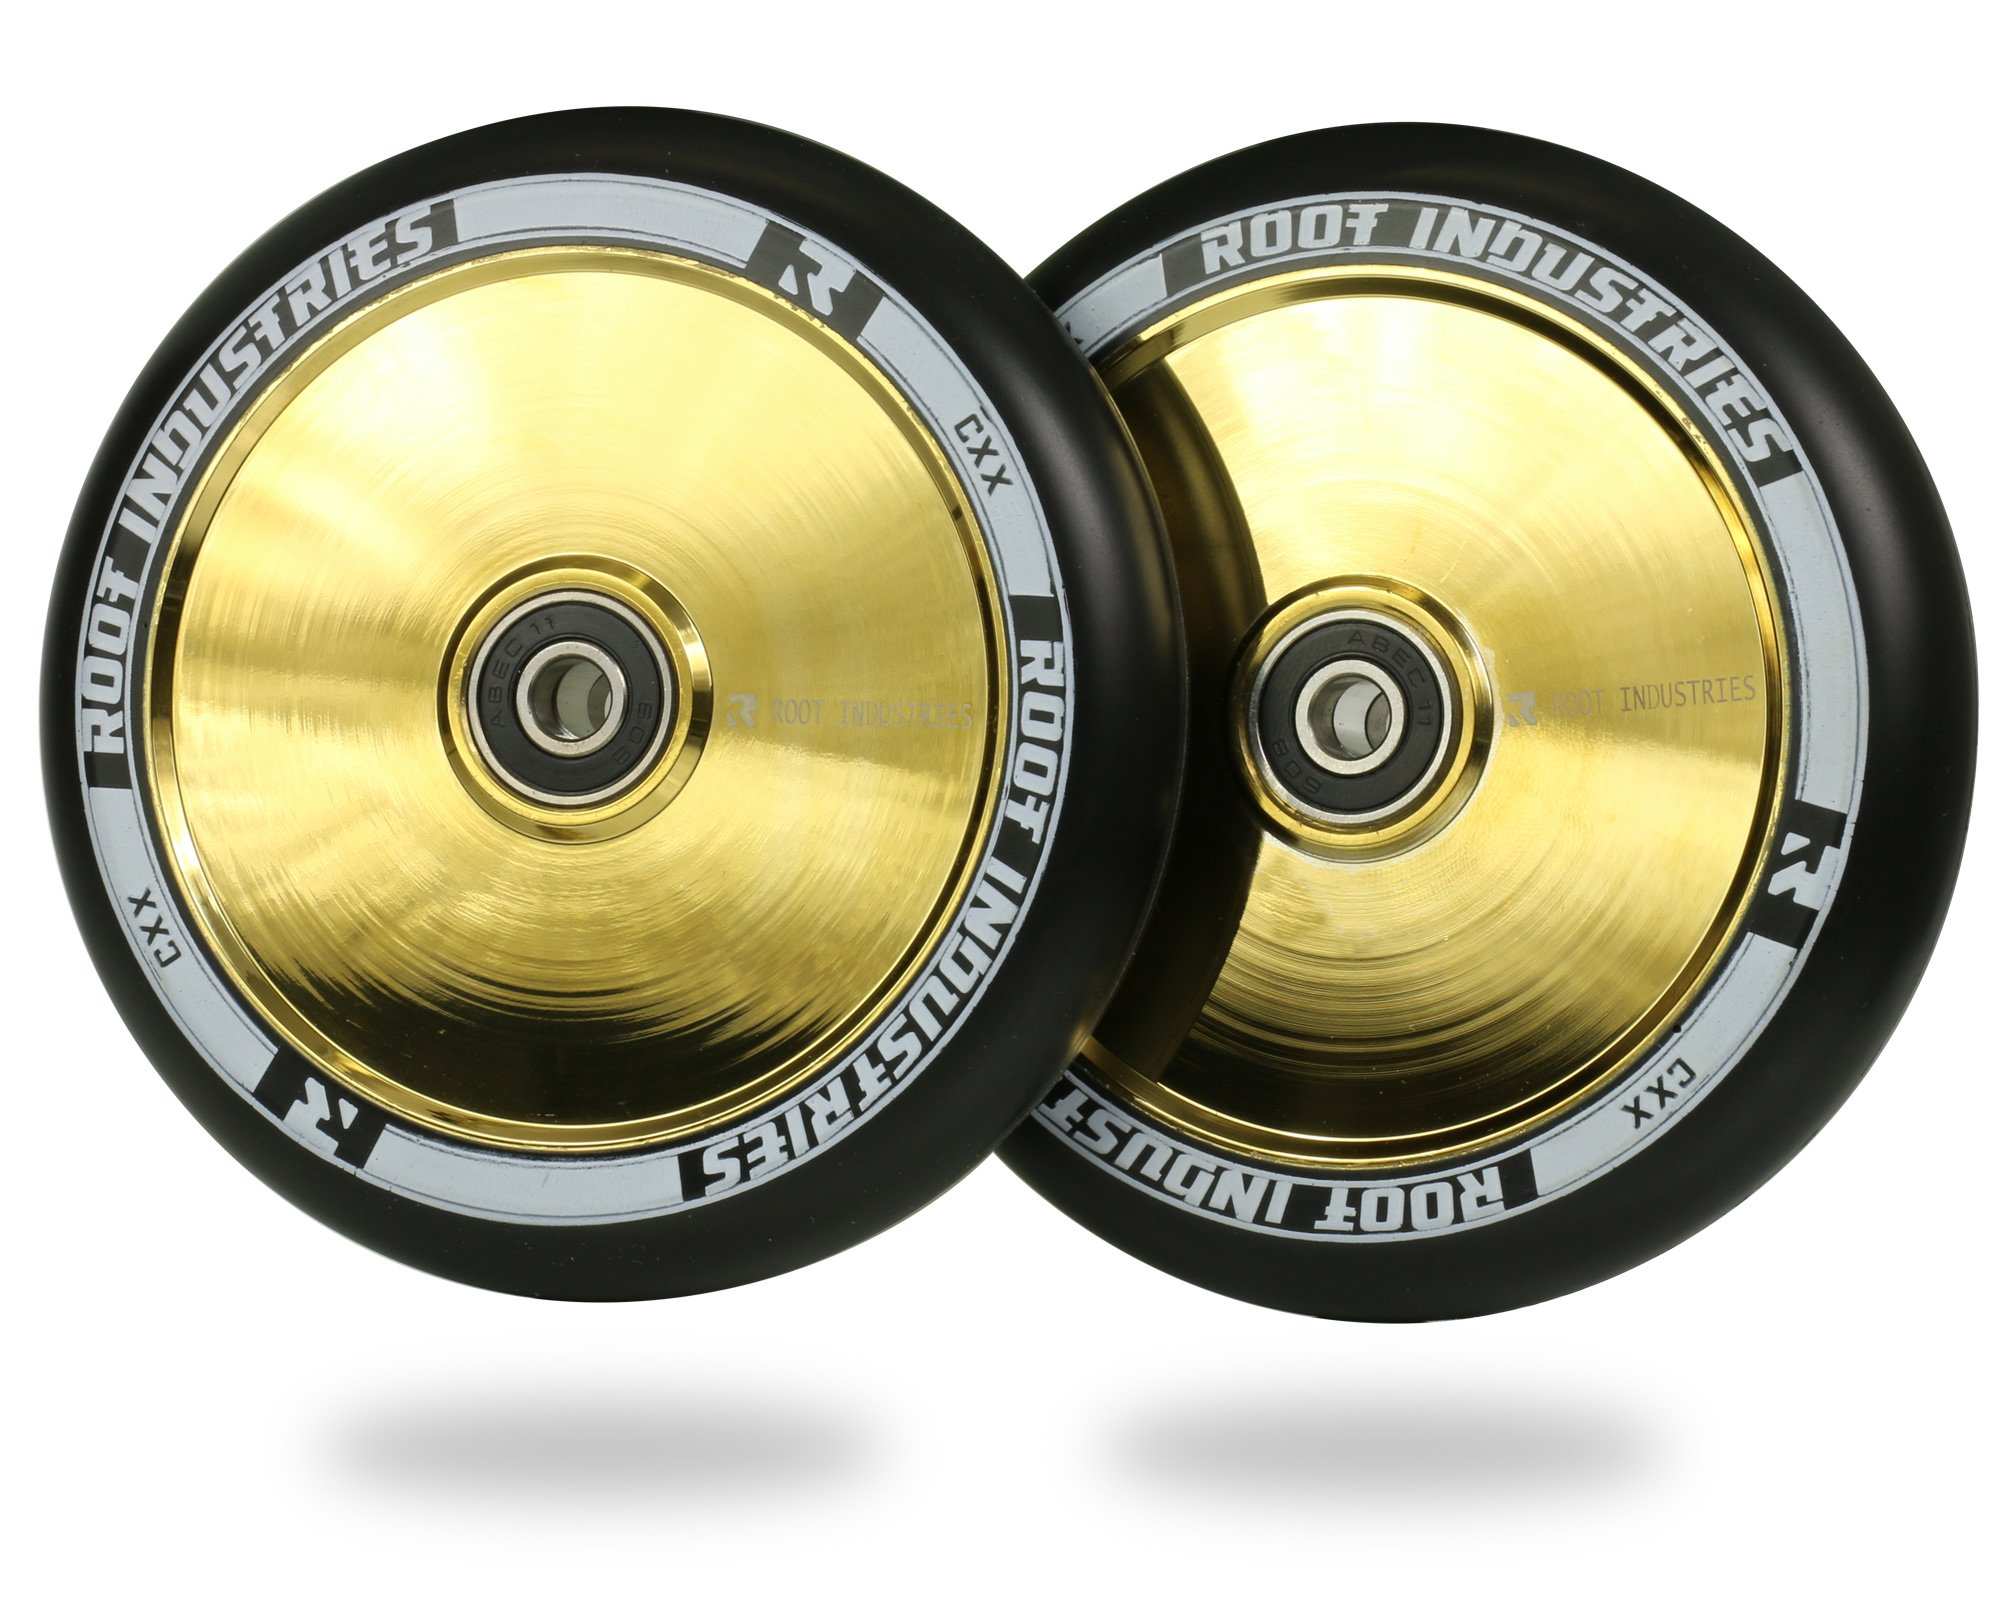 120mm AIR Pro Stunt Trick Kick Scooter Wheels (Pair) - Smooth Fast Hollowcore - Push Scooter Tires - 120mm Freestyle Speed Urethane - Fit Most Setups - 24mm x 120mm - Bearings (Black/Gold Rush)